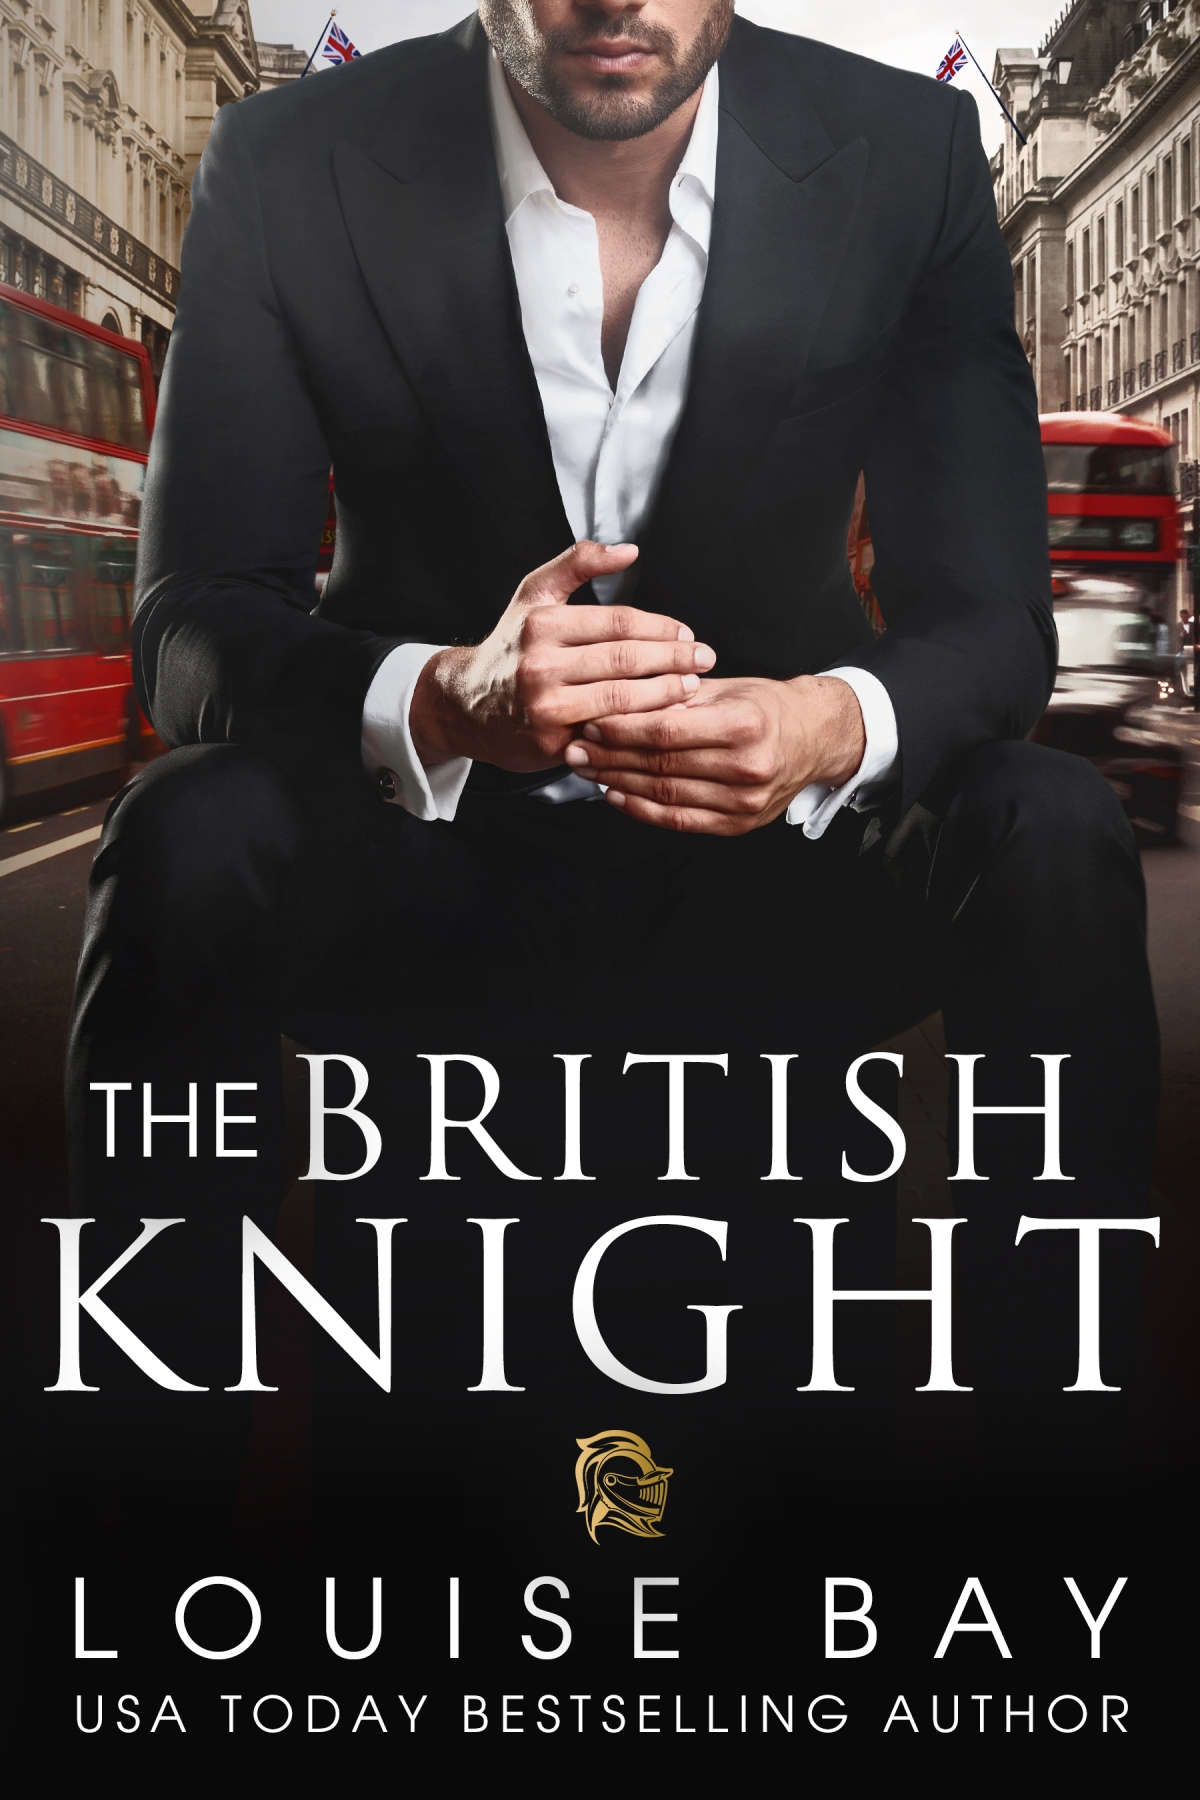 TheBritishKnight.Ebook[114023]